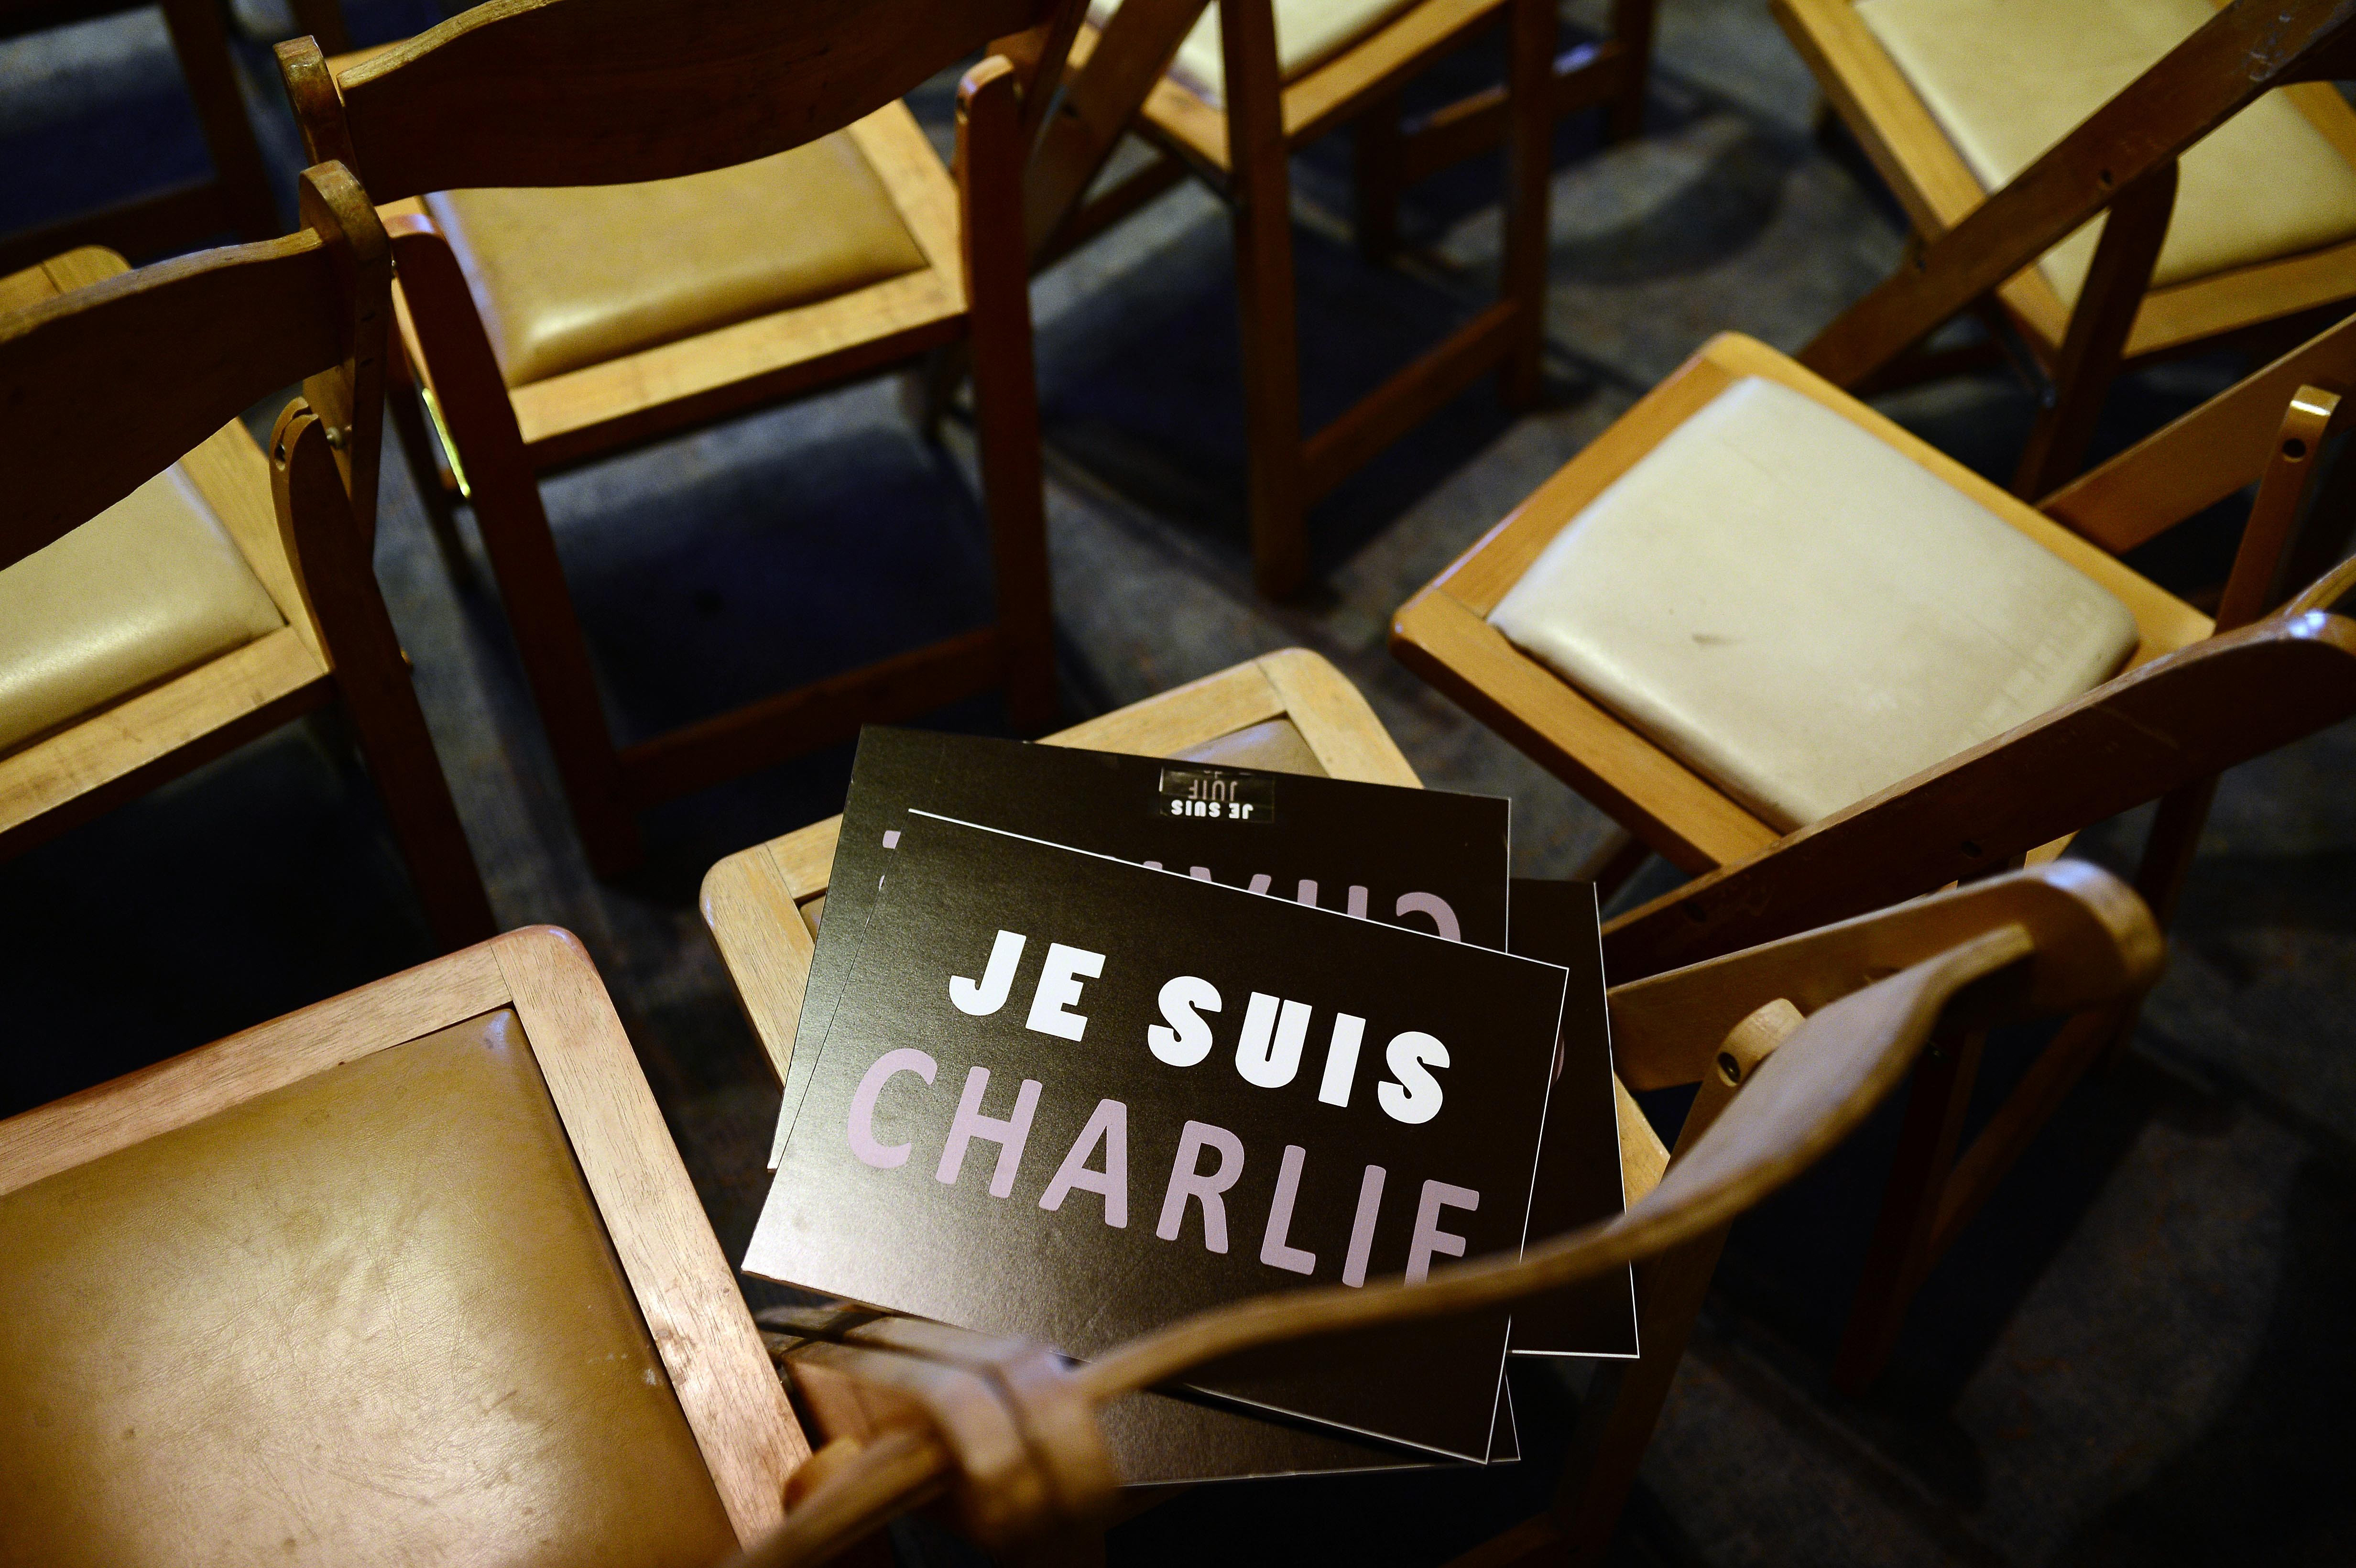 Jerusalem Municipality hold an organization to protest against gun attack to Charlie Hebdo in Paris, on January 11, 2014, in Jerusalem, Israel.